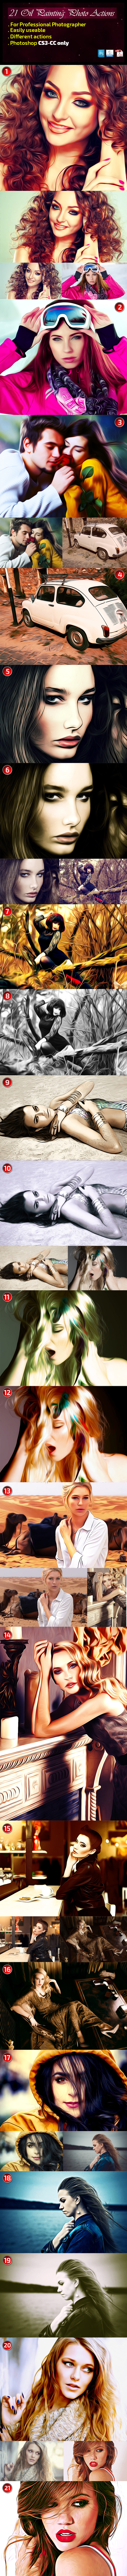 GraphicRiver 21 Oil Painting Photo Actions 9195180